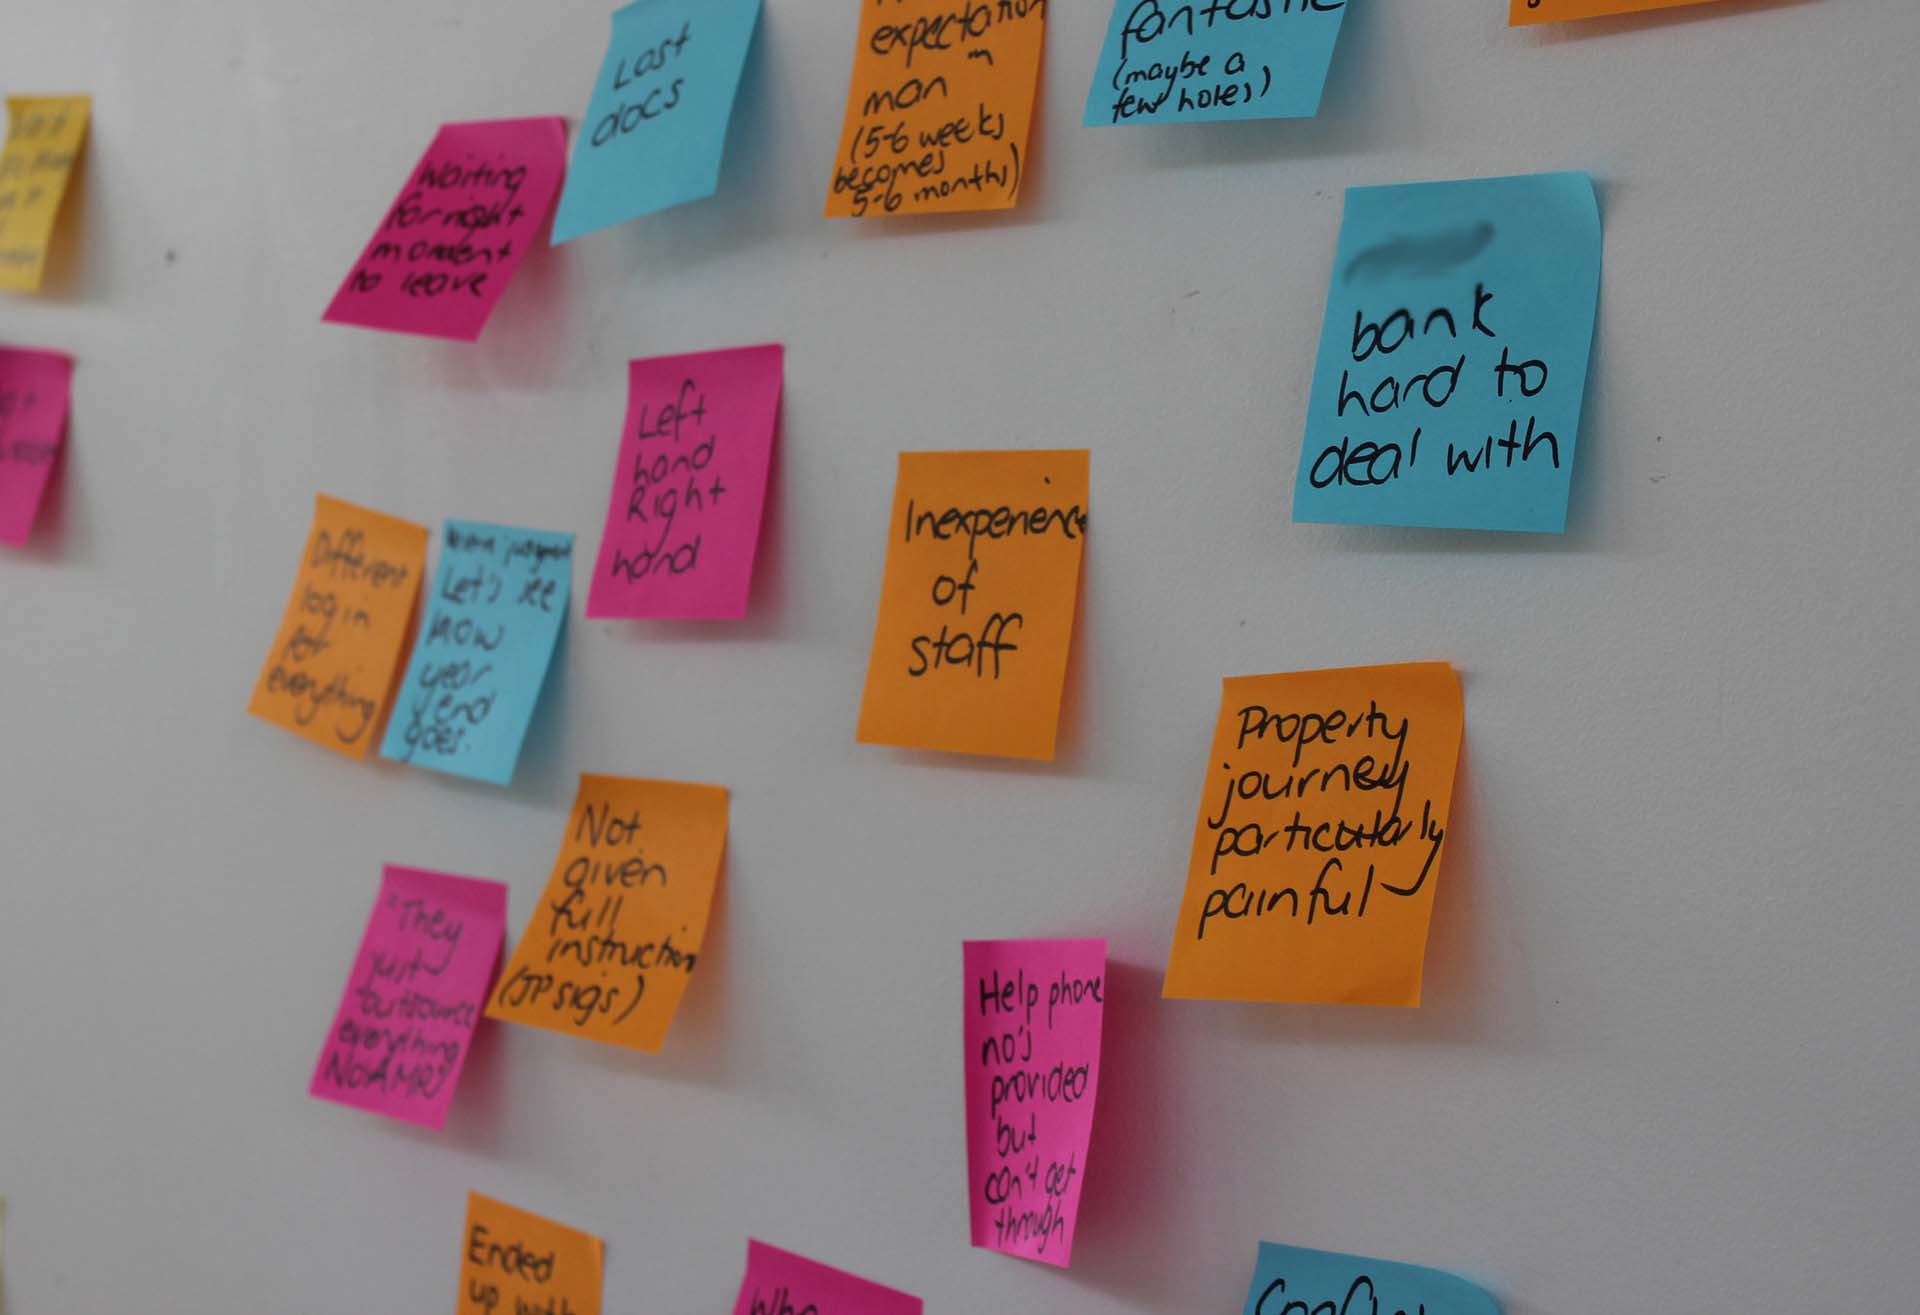 Coloured Promoter & Detractor customer experience notes on a wall